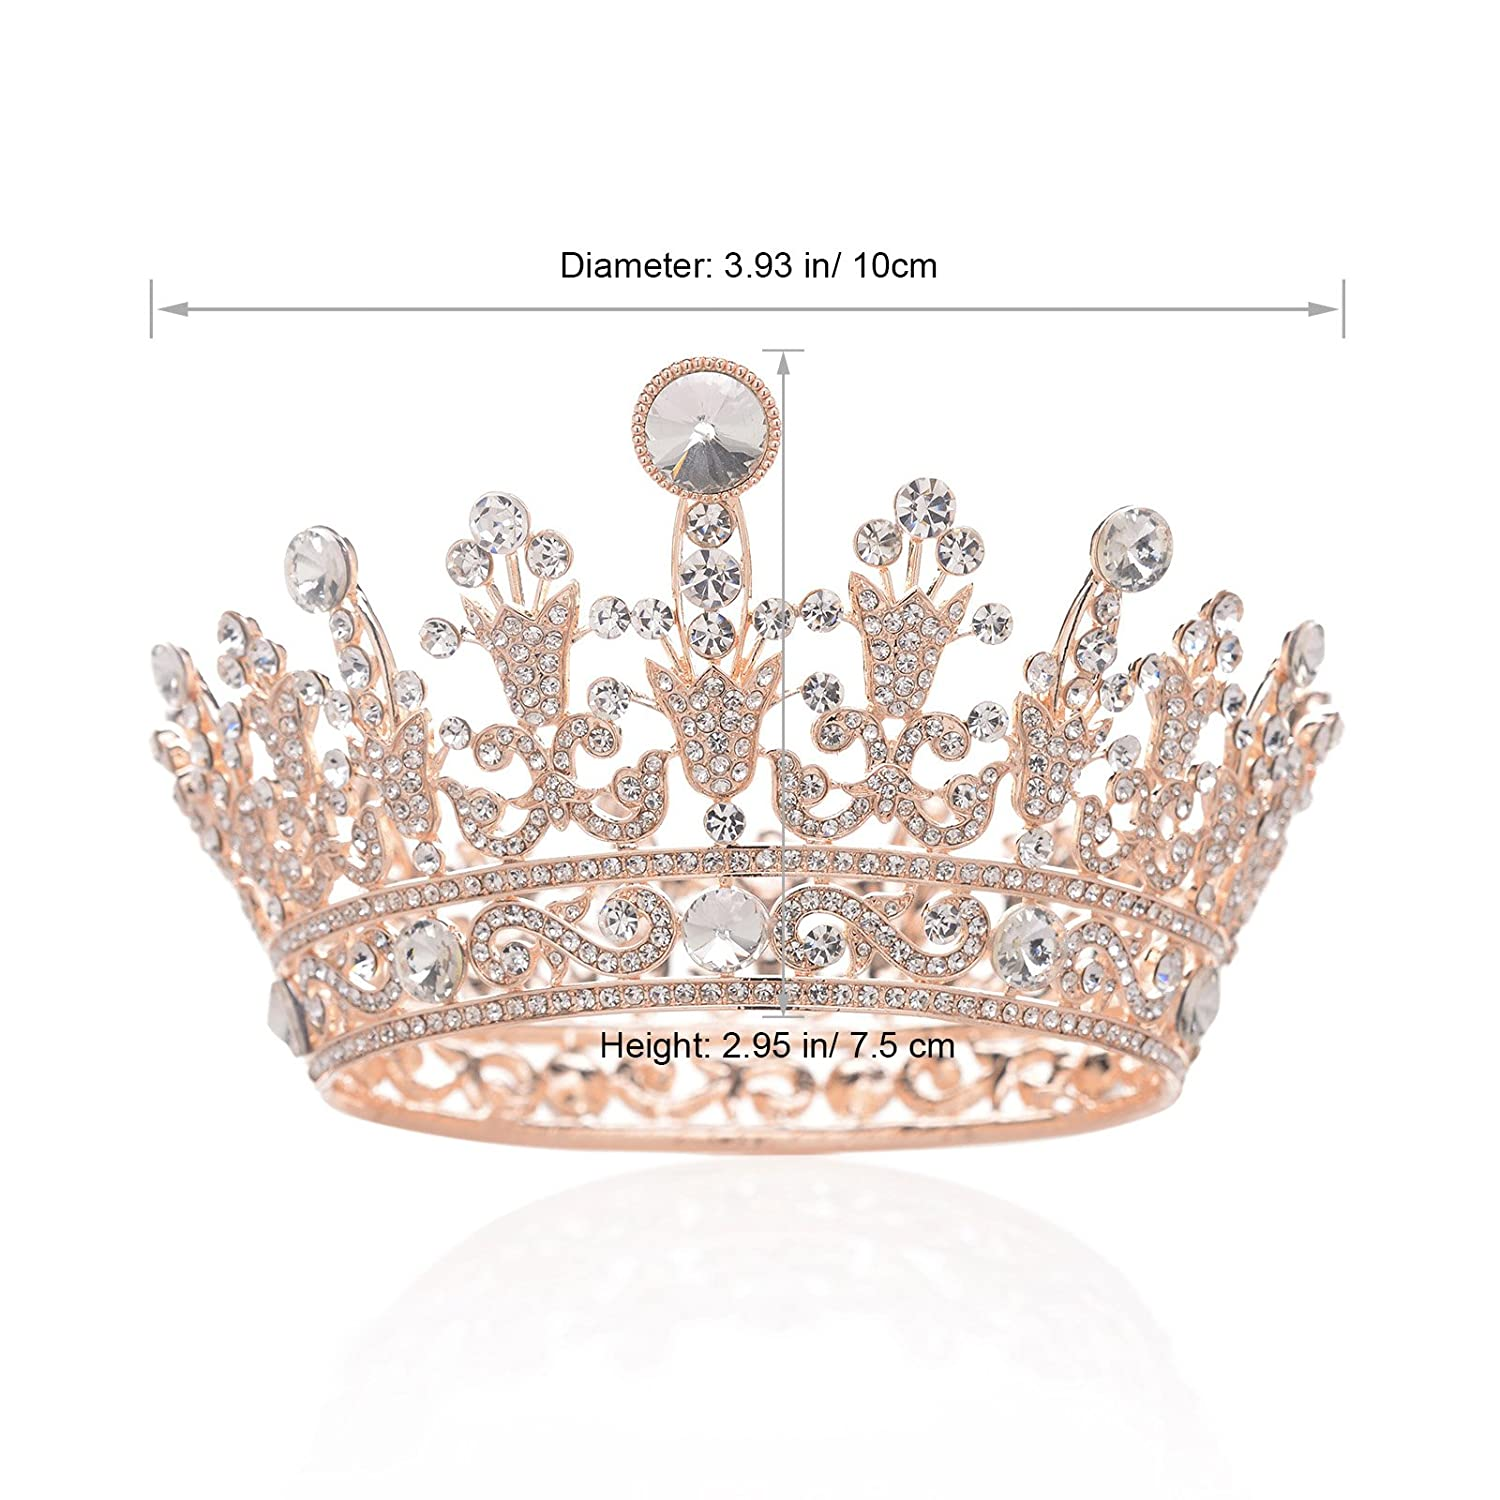 SWEETV Rose Gold Full Round Crystal Queen Crown Rhinestone Bridal Tiara  Pageant Prom Wedding Hair Jewelry  Amazon.co.uk  Beauty 331614fd06e8